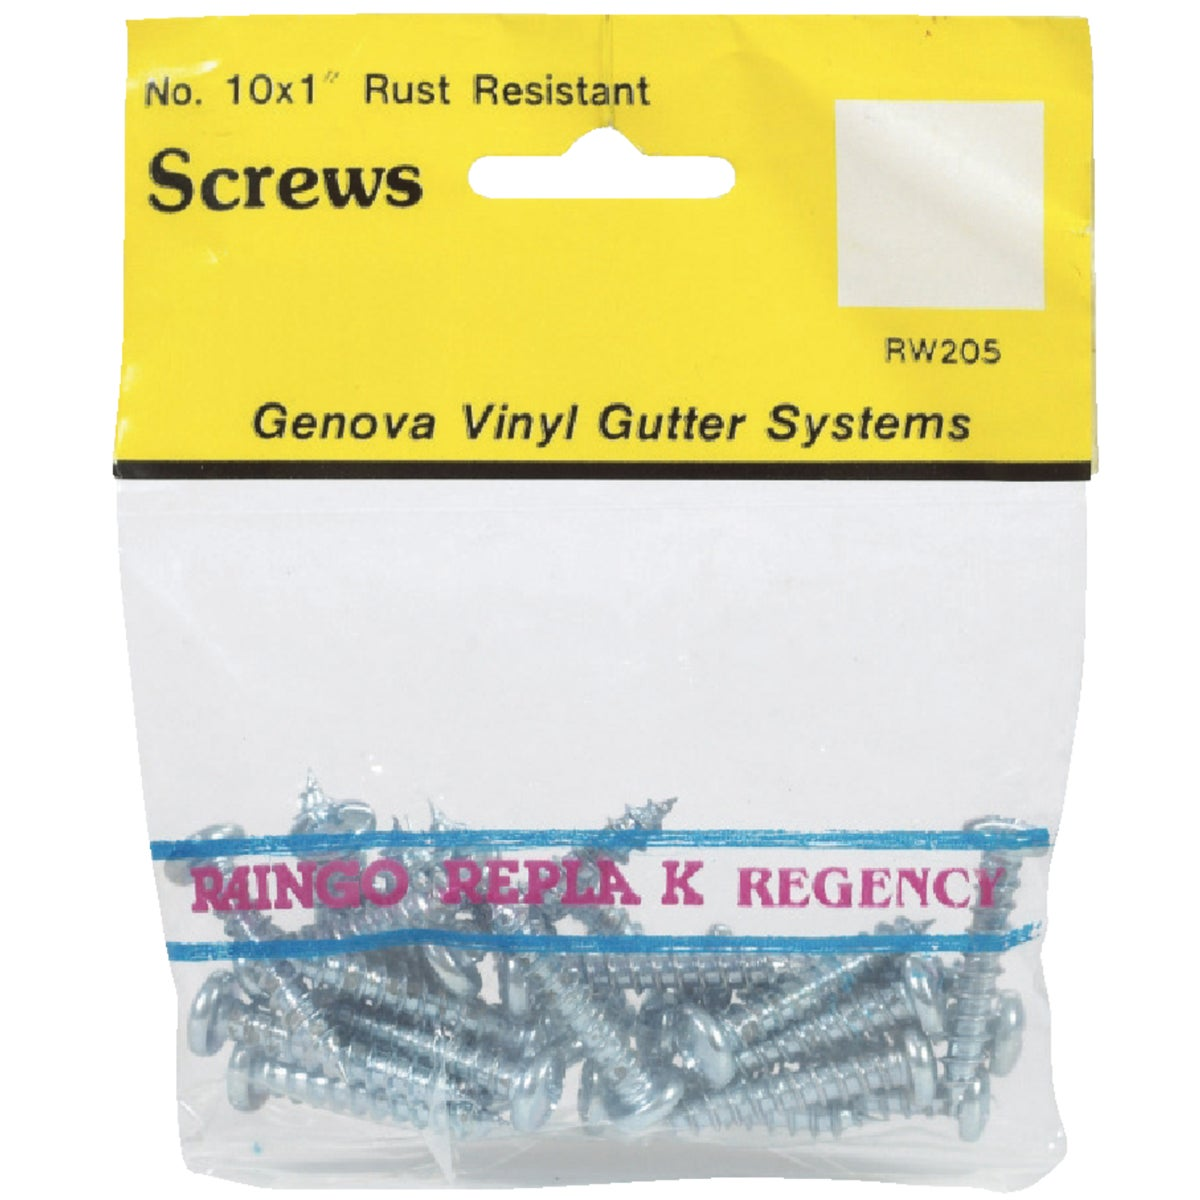 25/BAG RUSTPROOF SCREWS